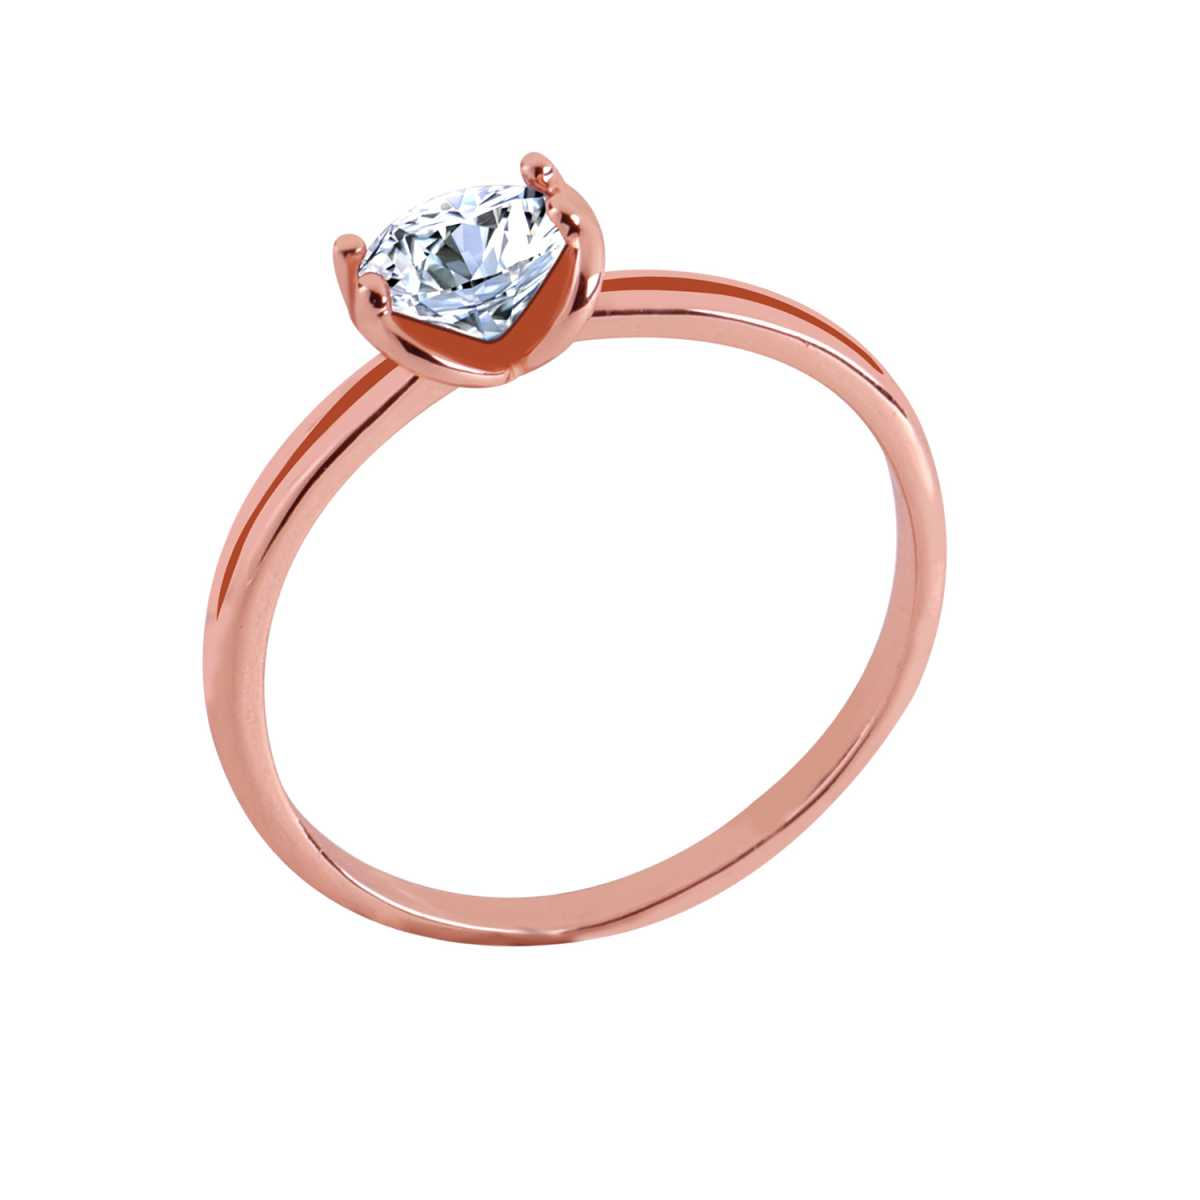 Silver Shine Rose Gold Plated Classic Solitaire Ring for Girls and women,wedding ring,jewelry,diamonds,fashion jewelry,couple rings.